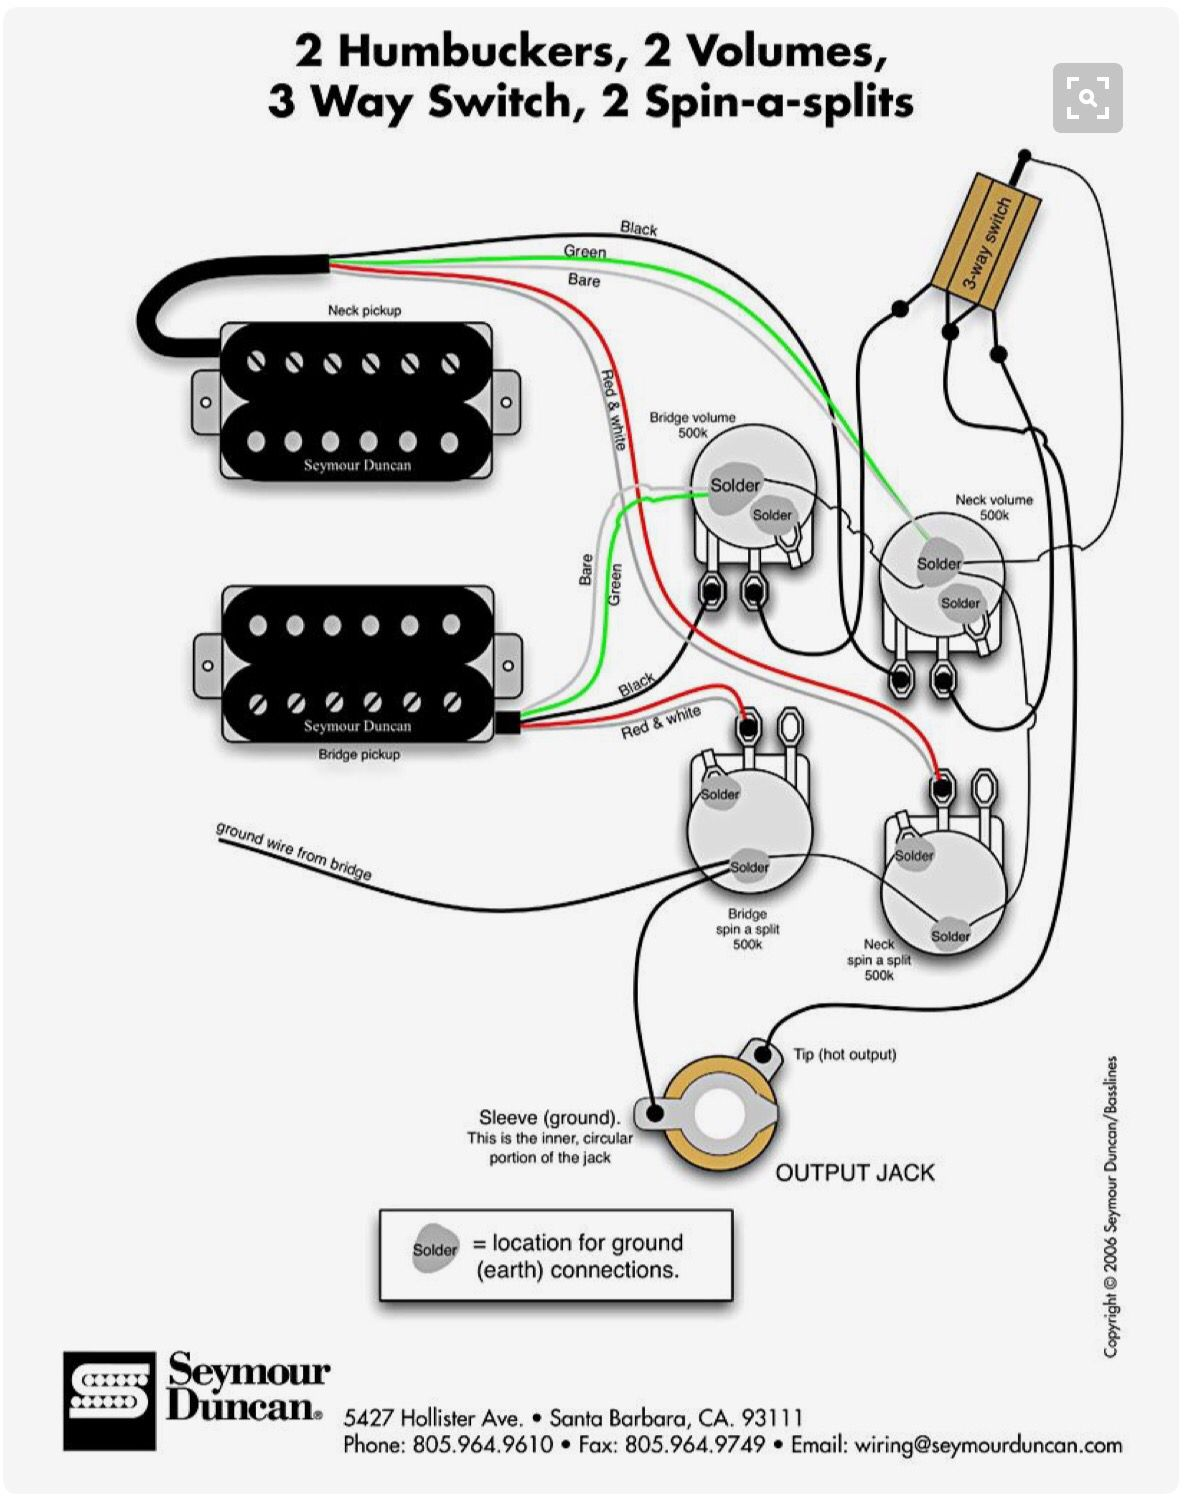 Wiring Diagram 2 Humbuckers 1 Volume